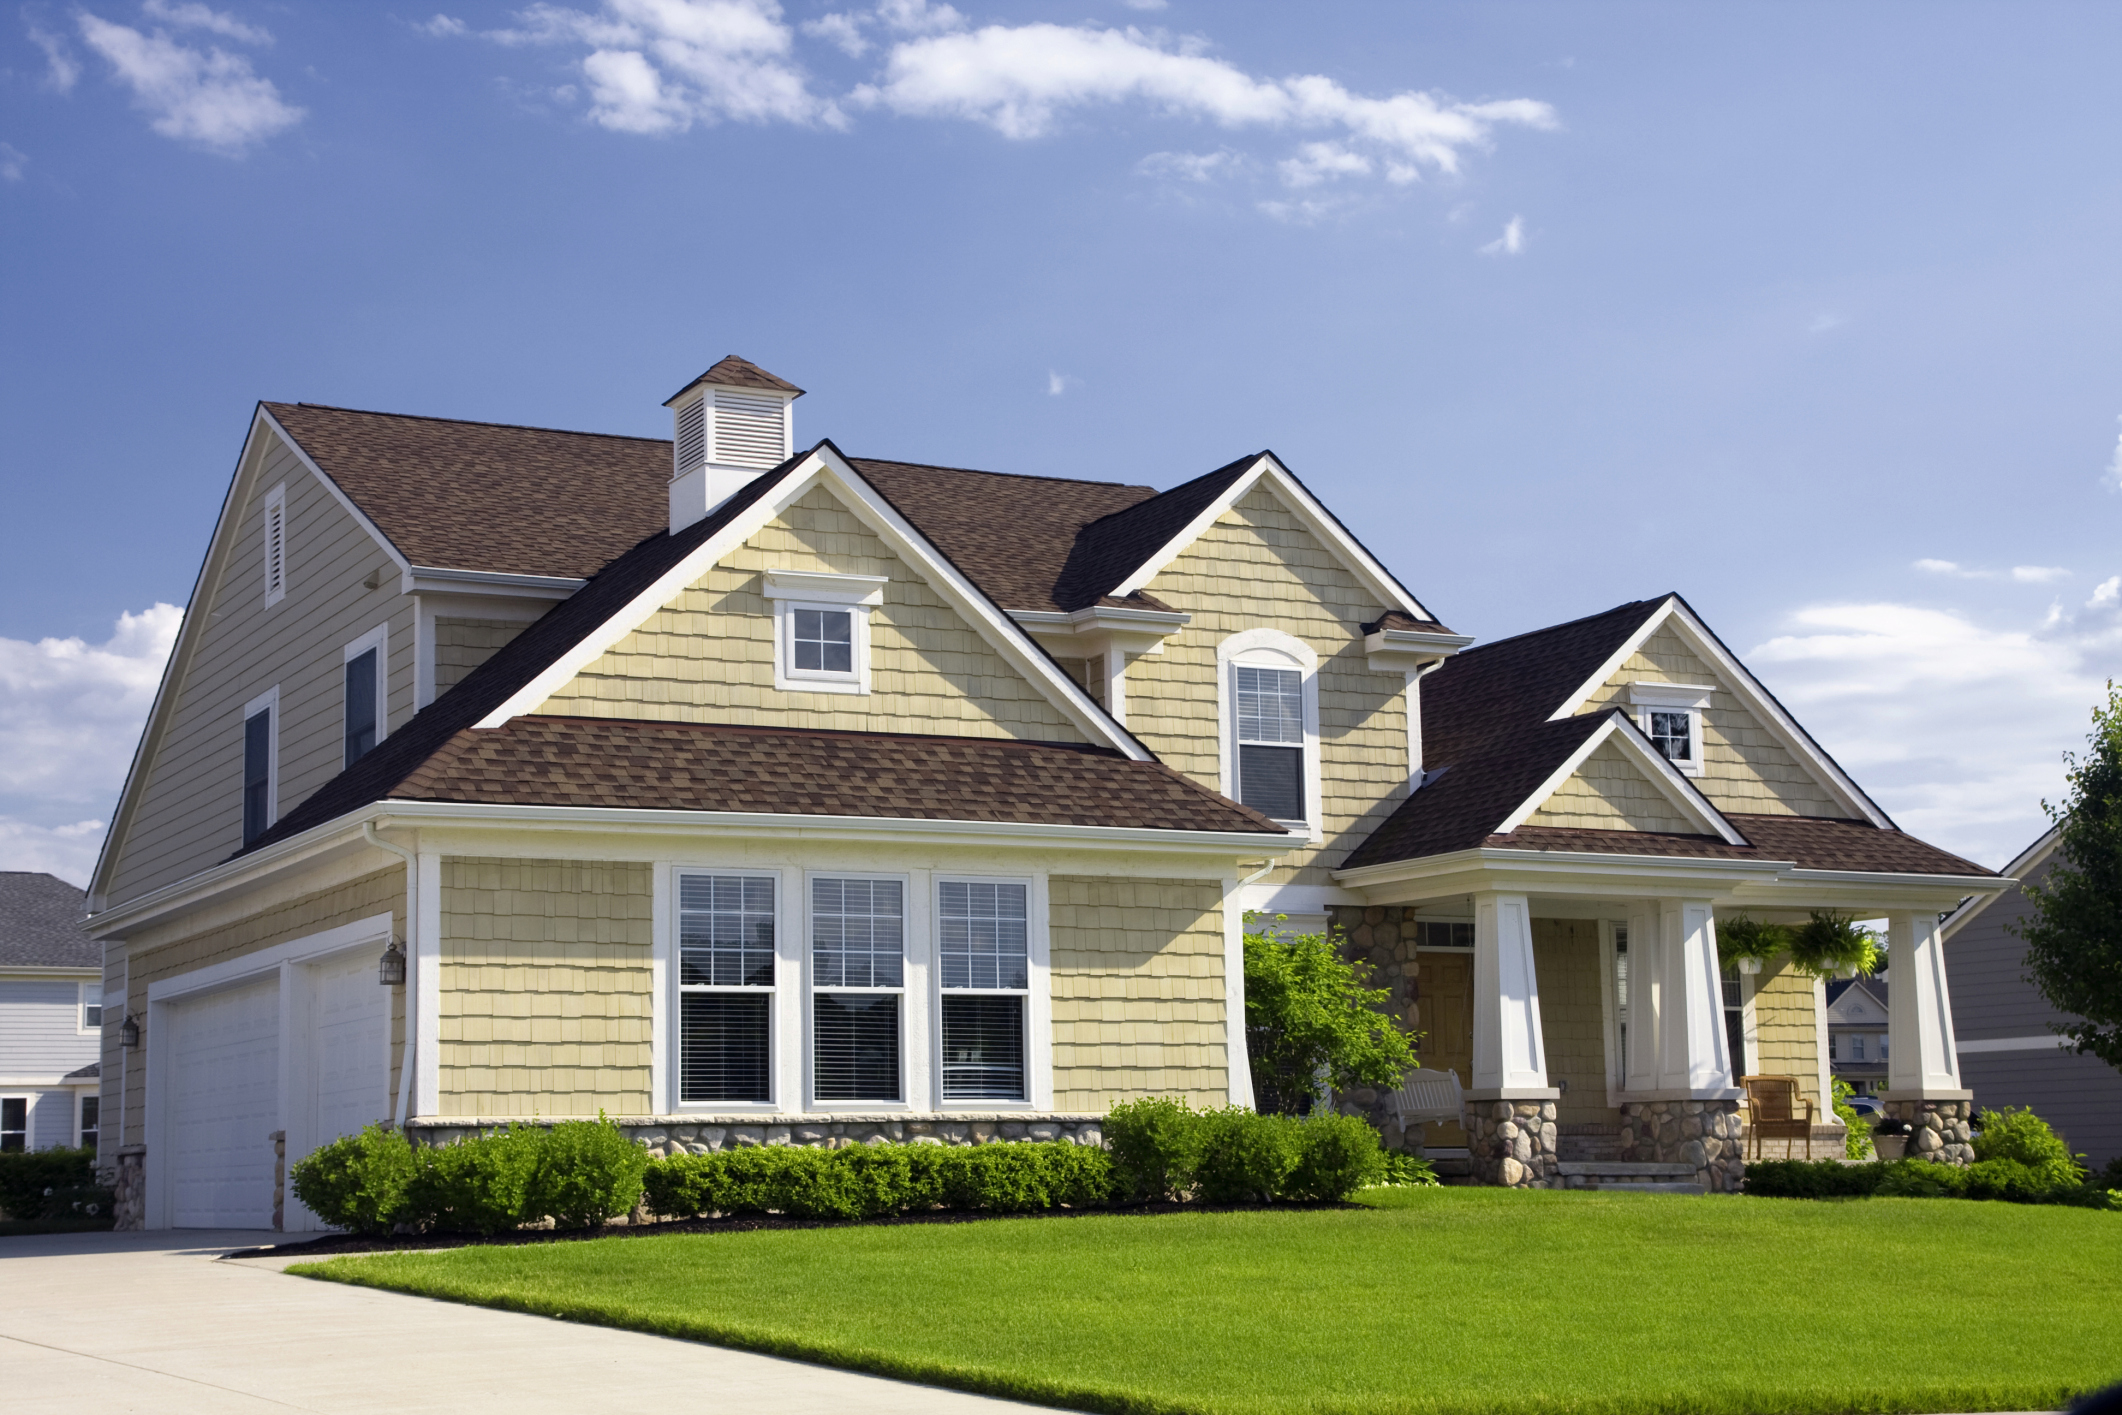 Des Moines Metro Real Estate Better Homes and Gardens Innovations